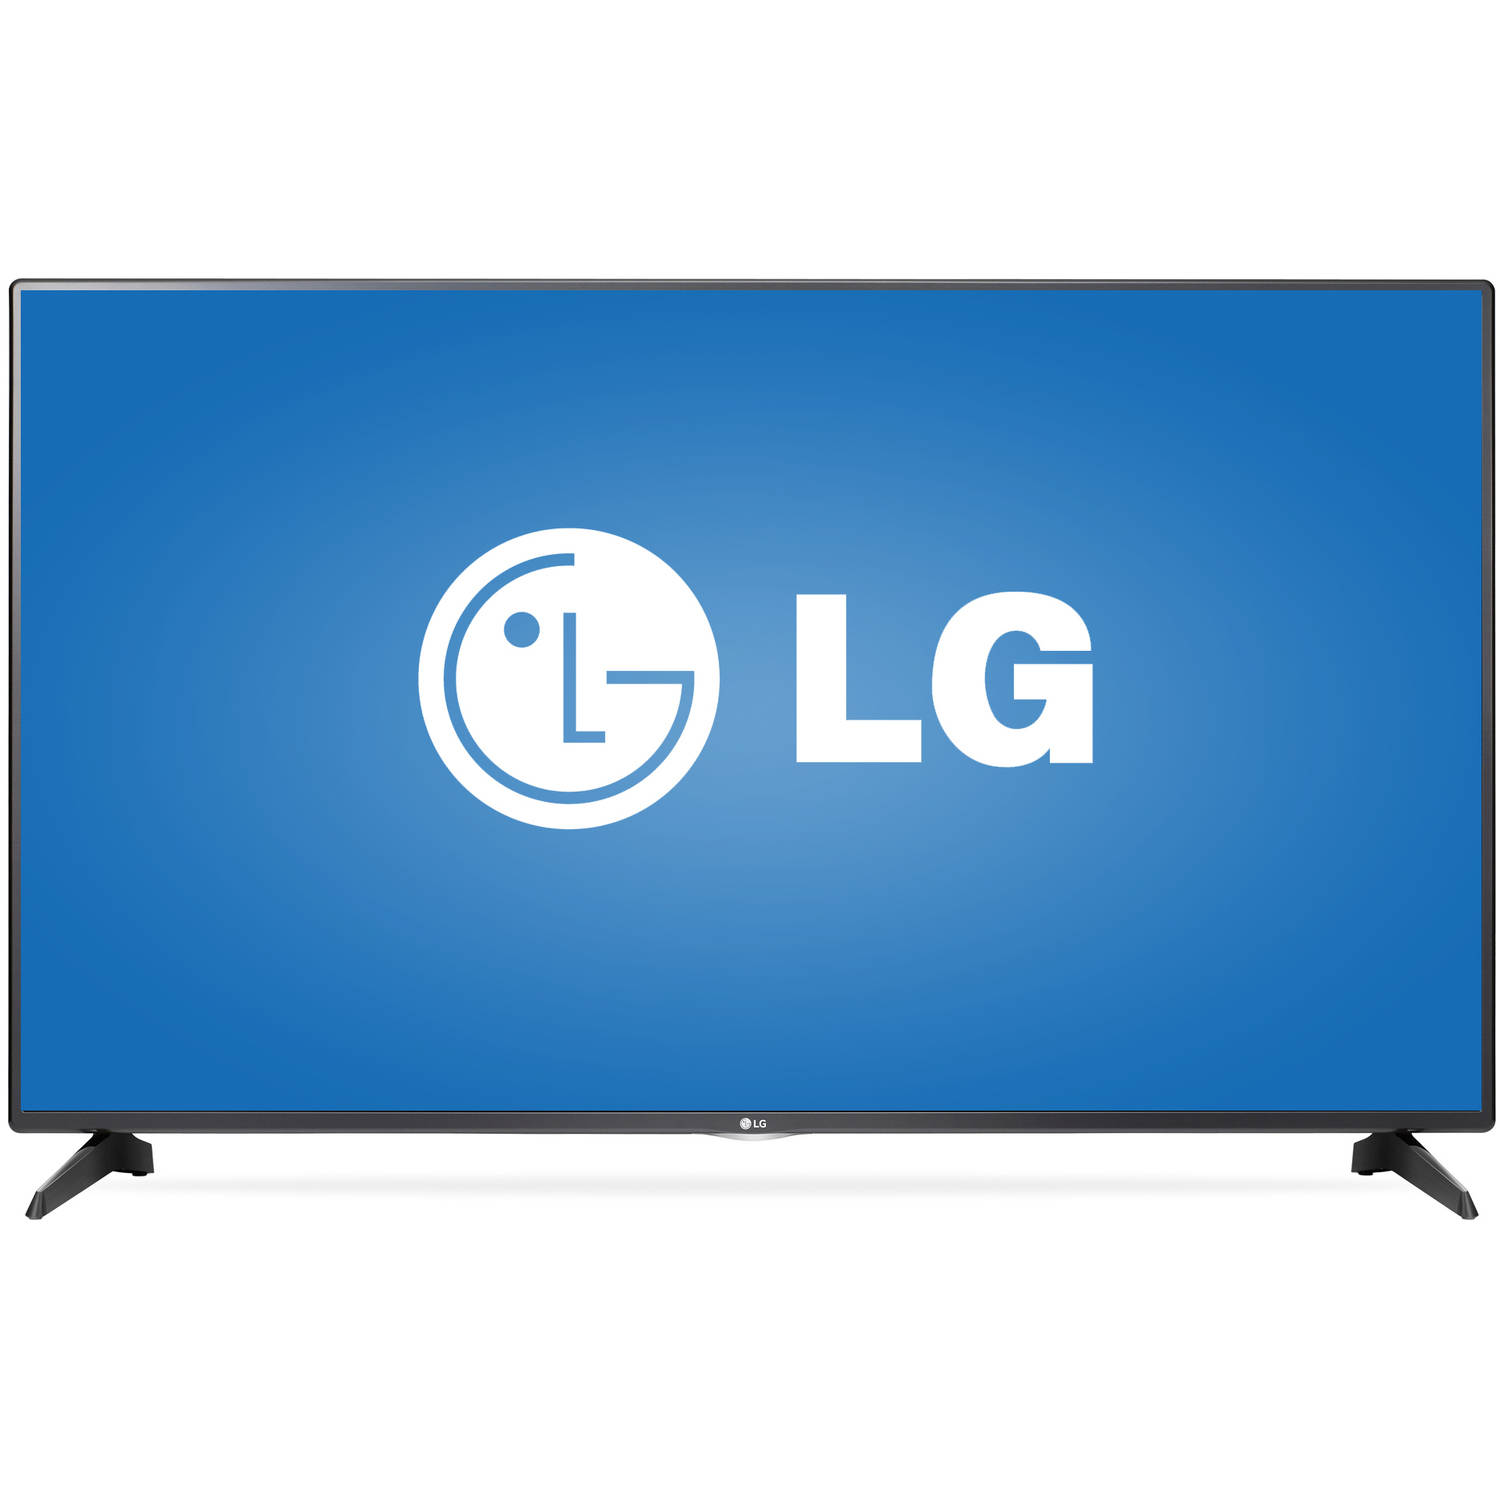 "LG 55LH5750 55"" 1080p 60Hz LED Smart HDTV"